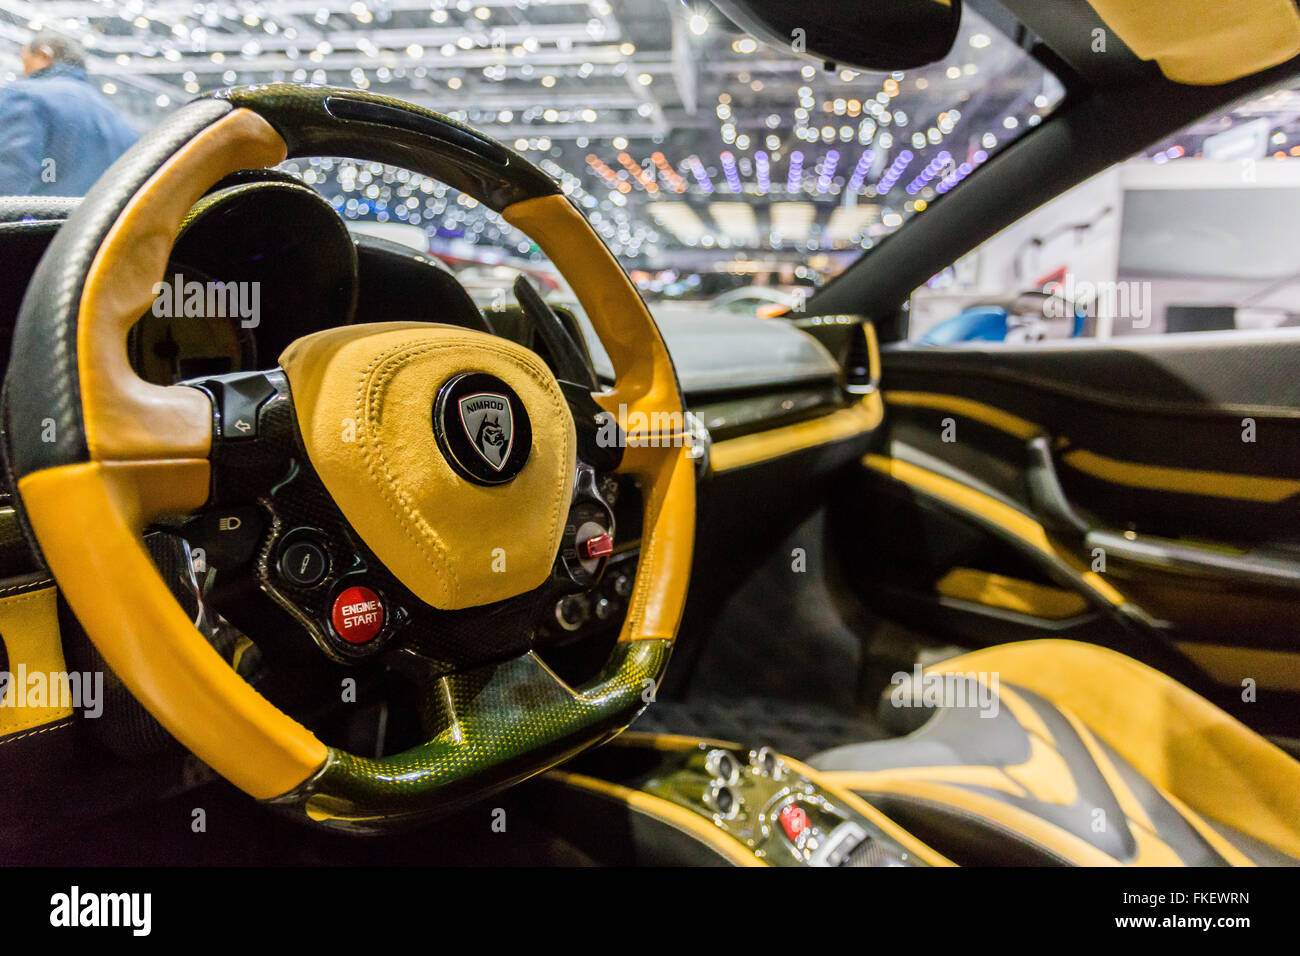 A Ferrari SP275, which is a race car presented at the Geneva Motor Show in 2016. - Stock Image